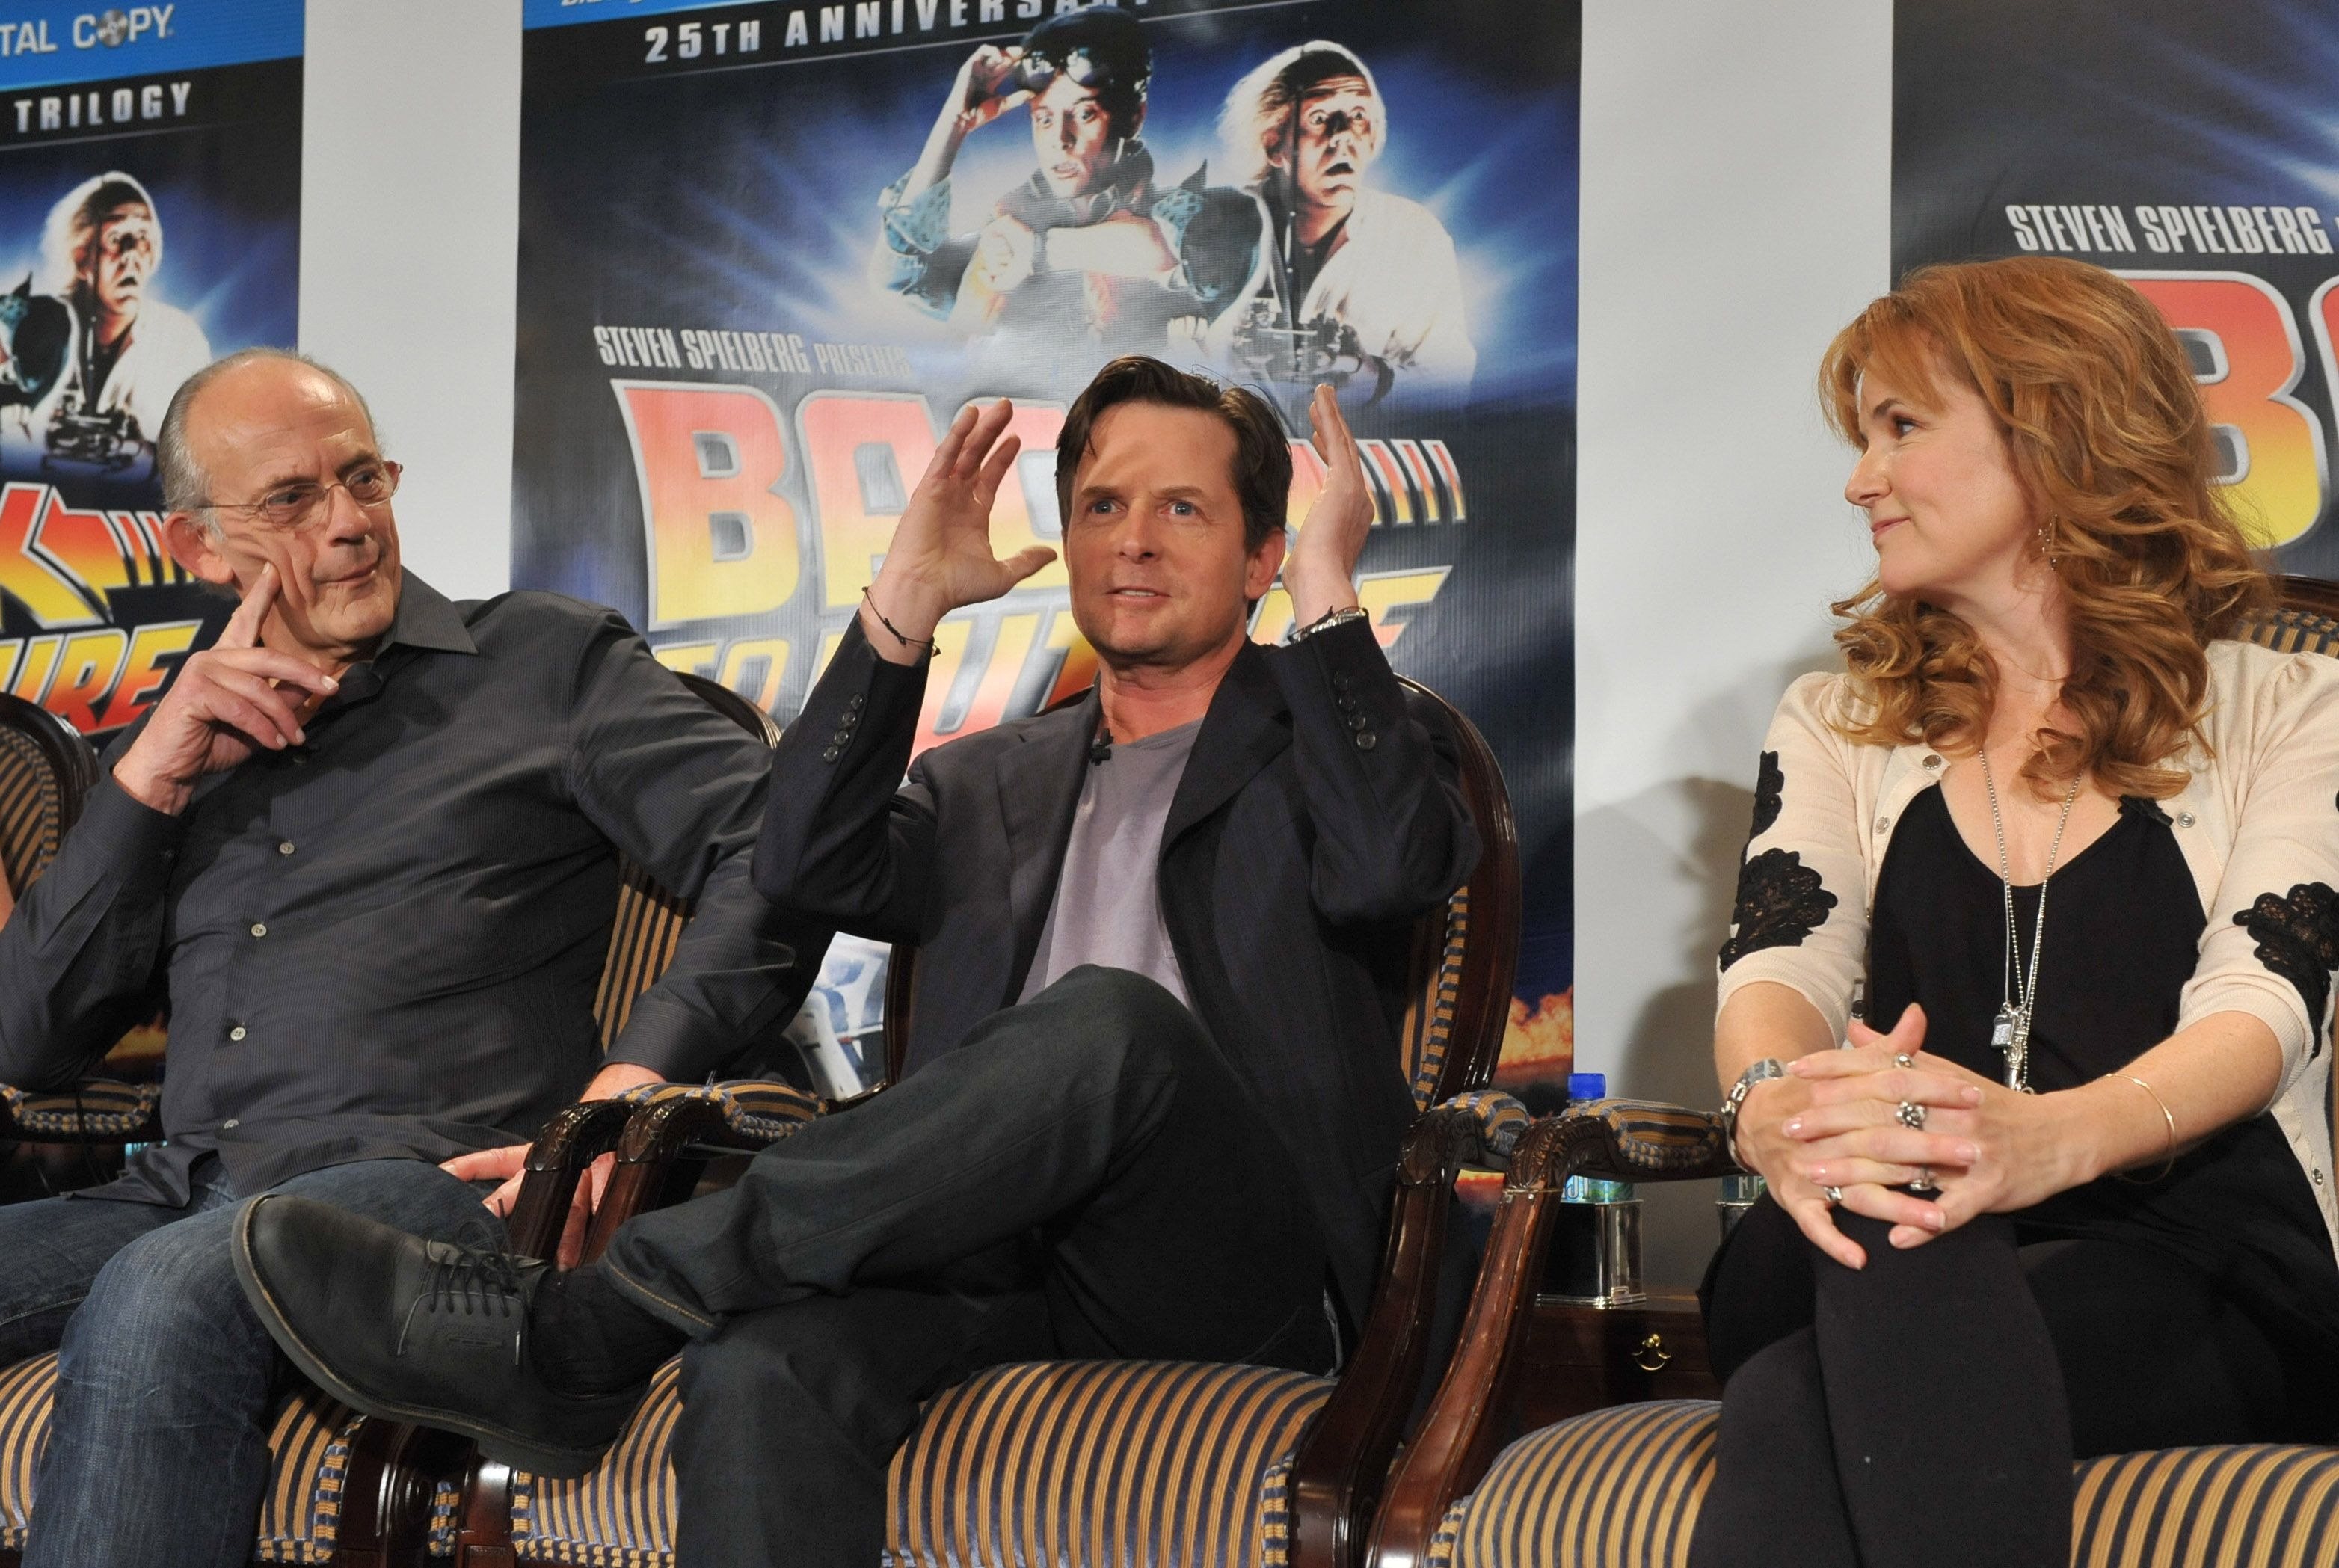 BACK TO THE FUTURE Blu RayDVD Press Conference With